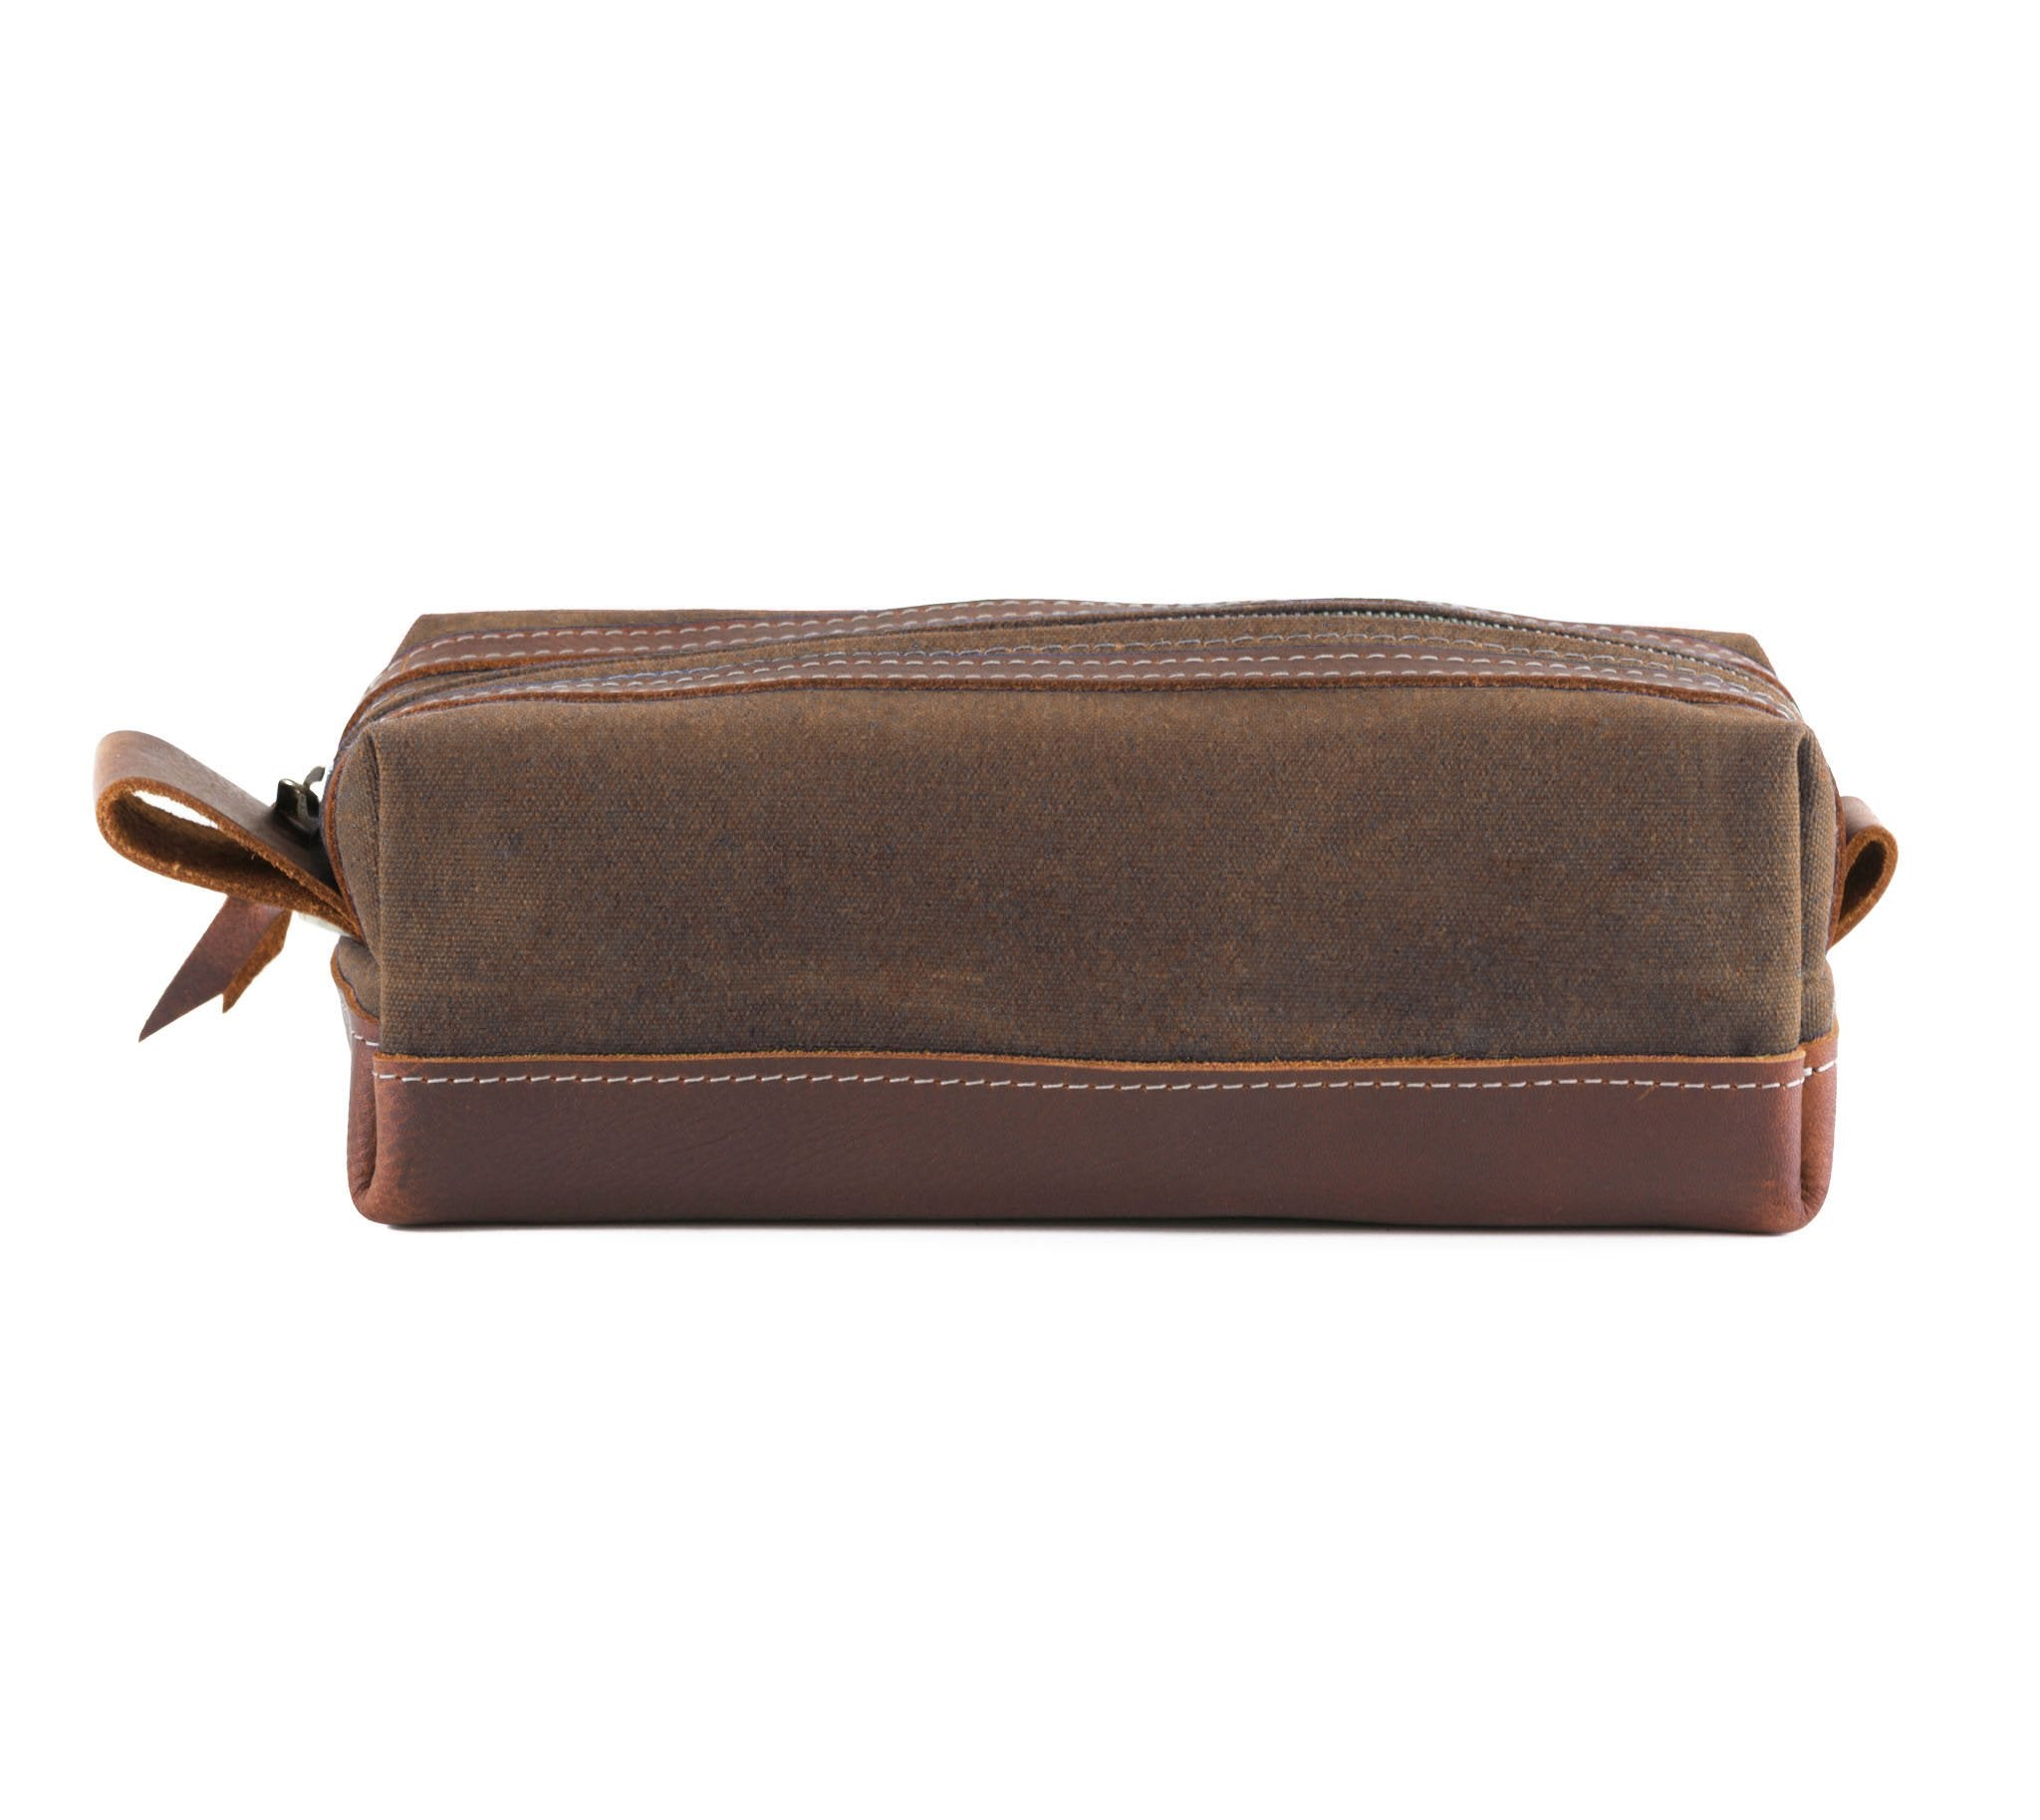 Brown Waxed Canvas Toiletry Bag